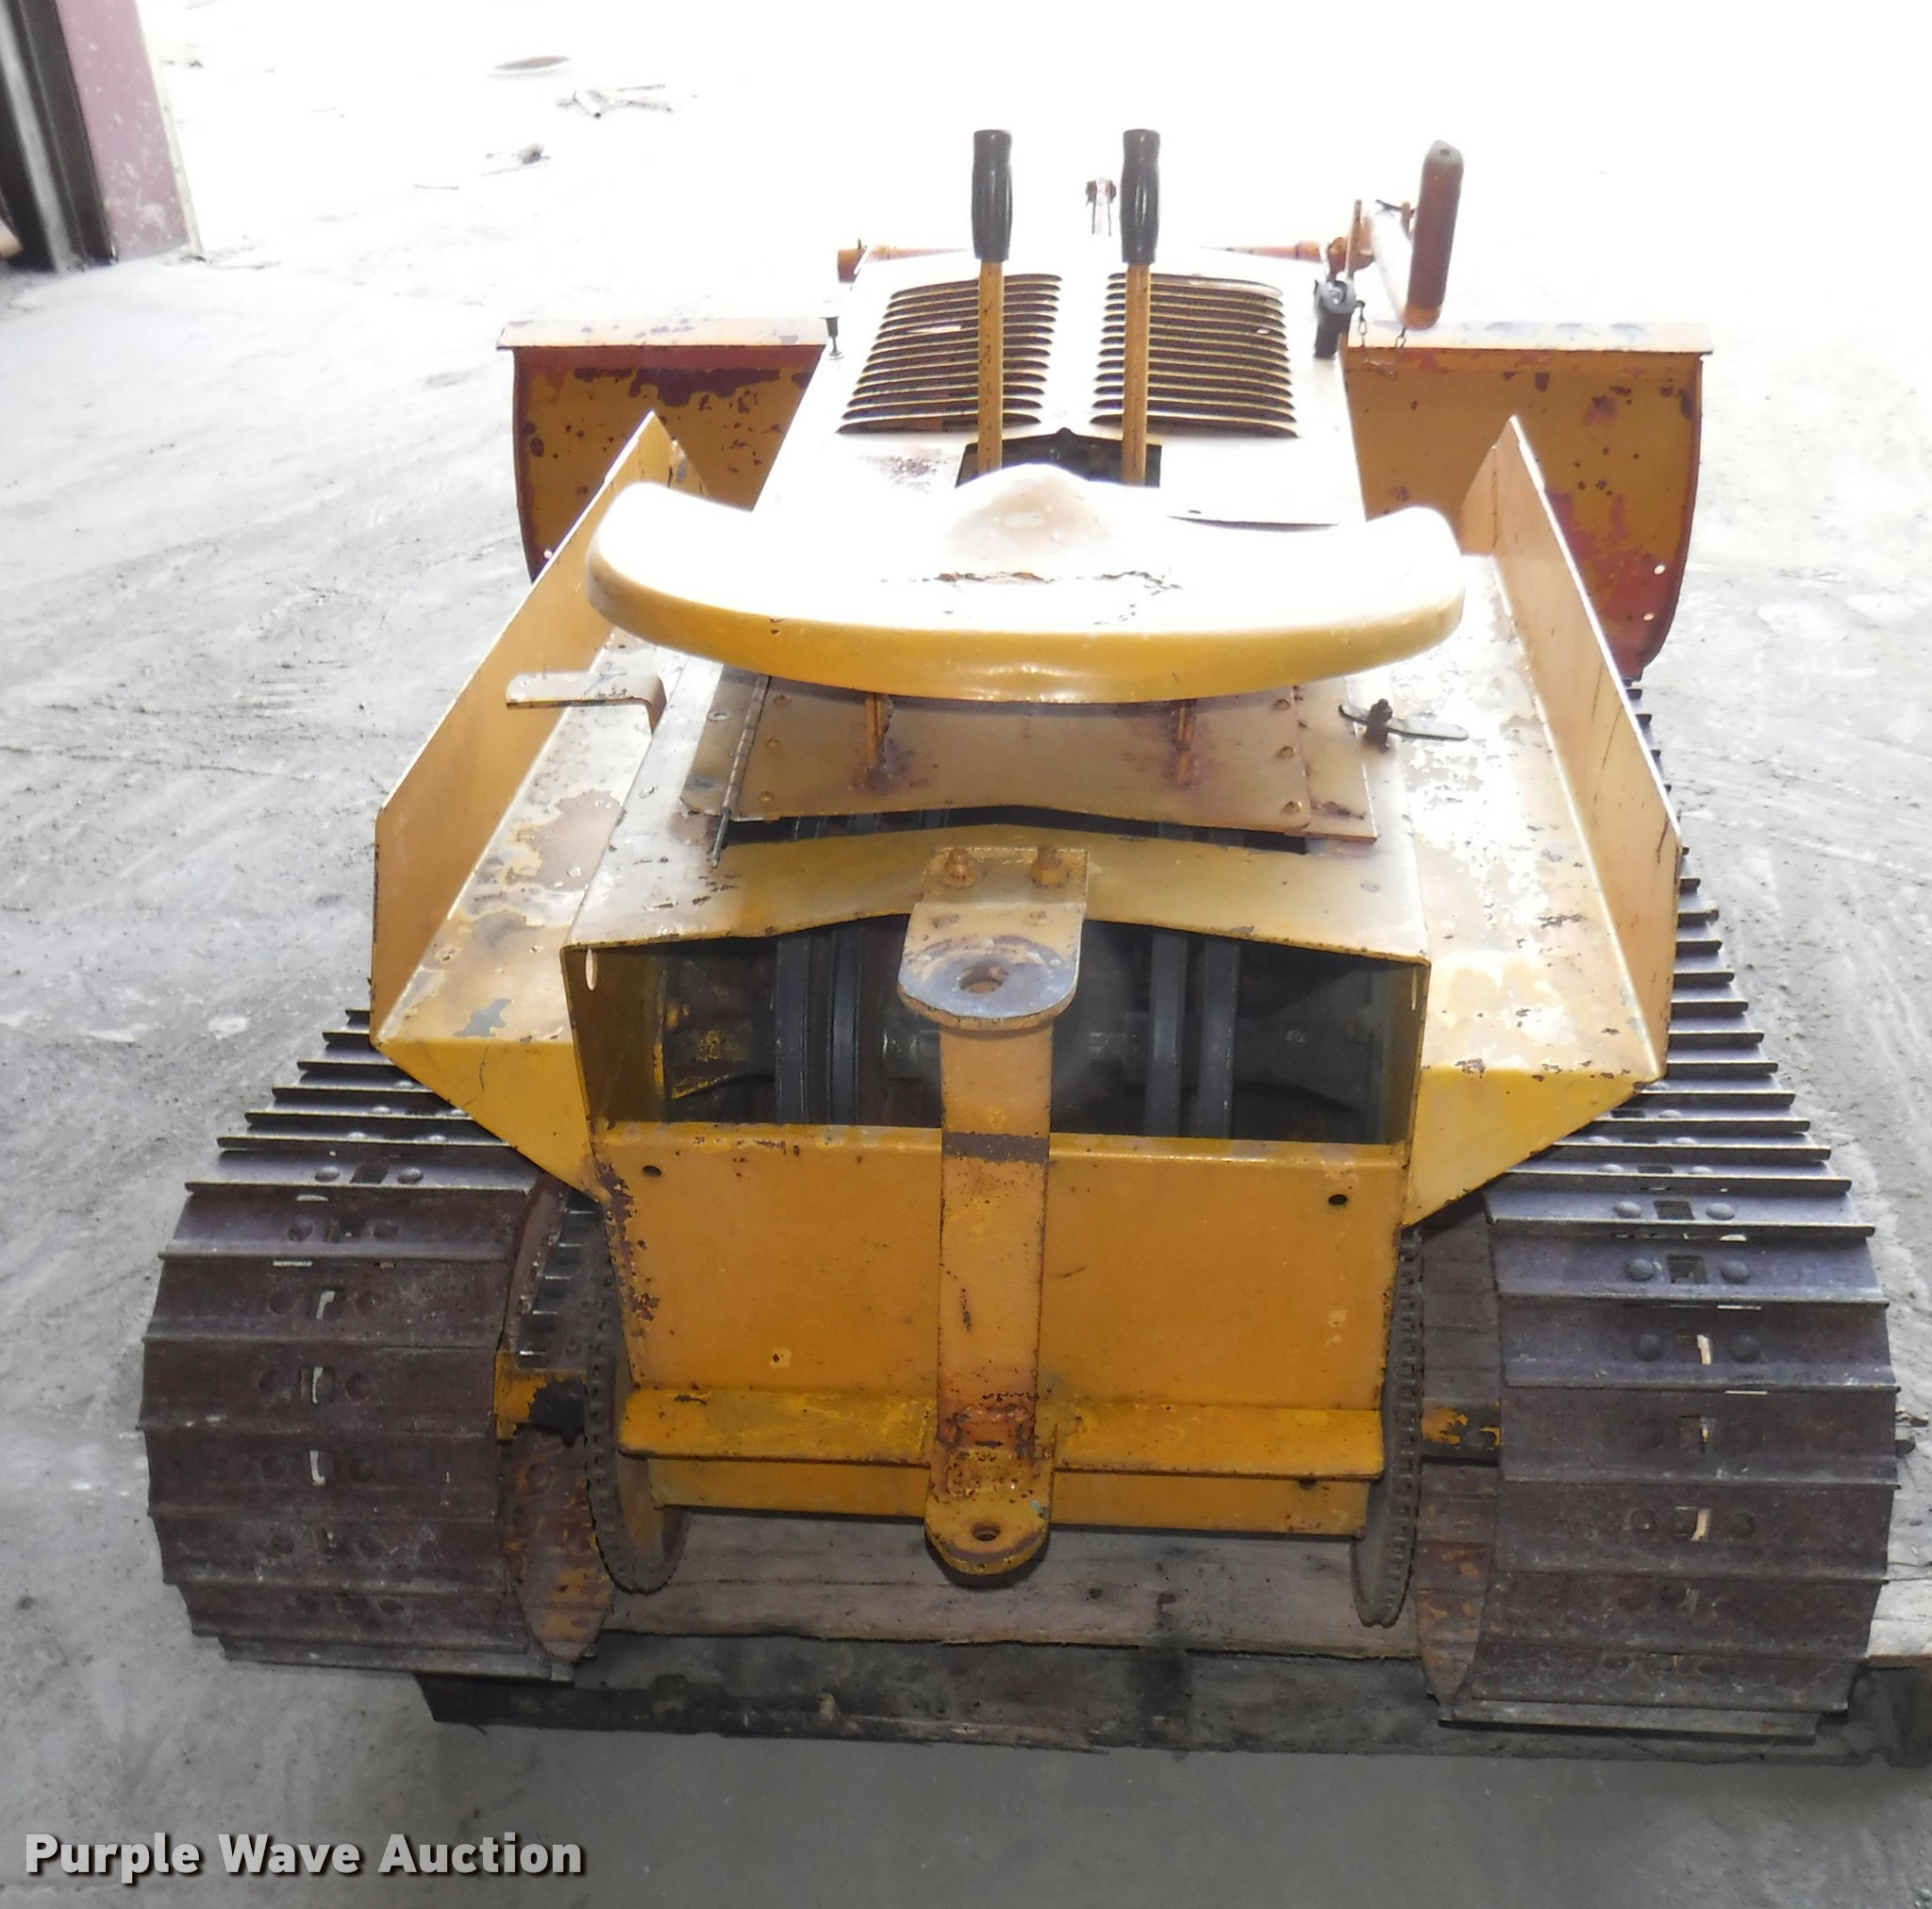 1965 Strut Magnatrac mini dozer | Item DJ9089 | SOLD! June 7